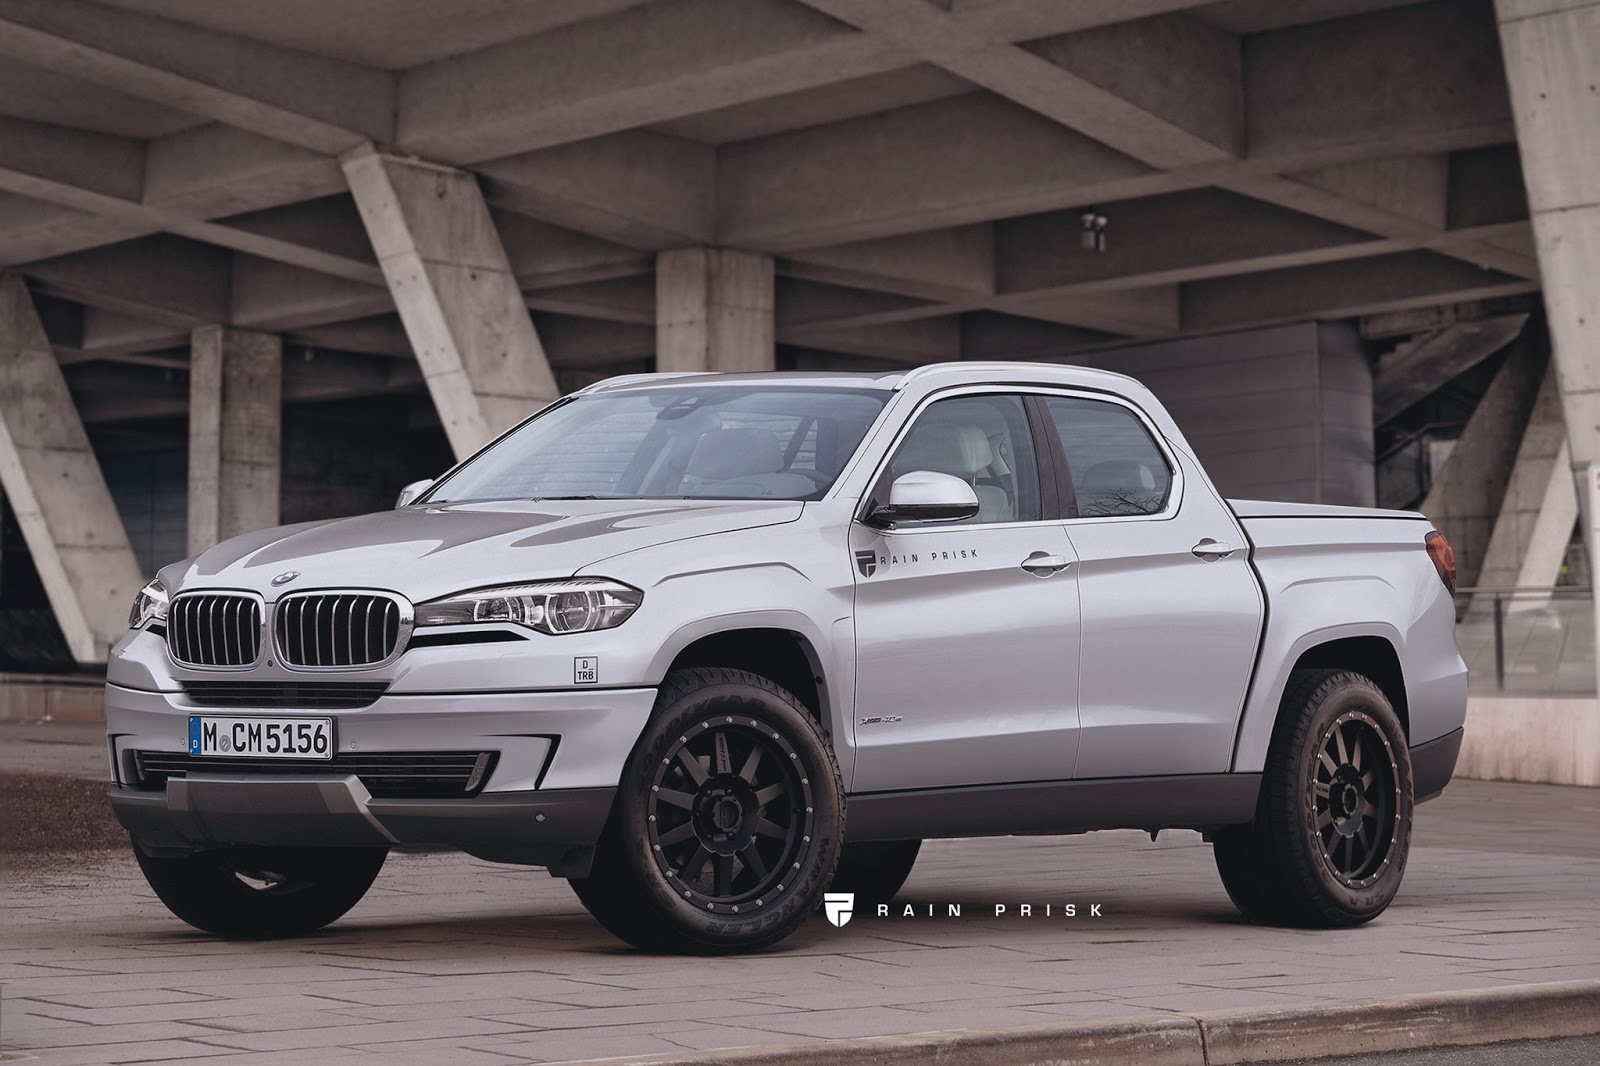 Bmw Pick Up Truck >> This Bmw Pickup Truck Rival To The Mercedes Benz X Class Could Be A